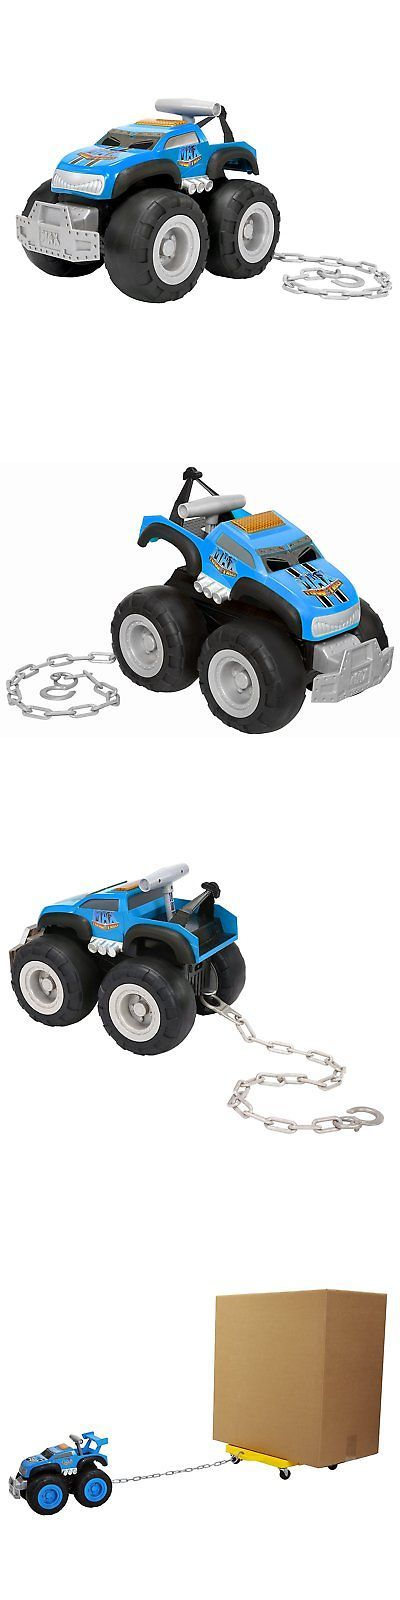 Toy Vehicles 145946: Max Tow Truck Turbo Speed Blue Truck, Kids Toy Play Vehicle -> BUY IT NOW ONLY: $44.2 on eBay!